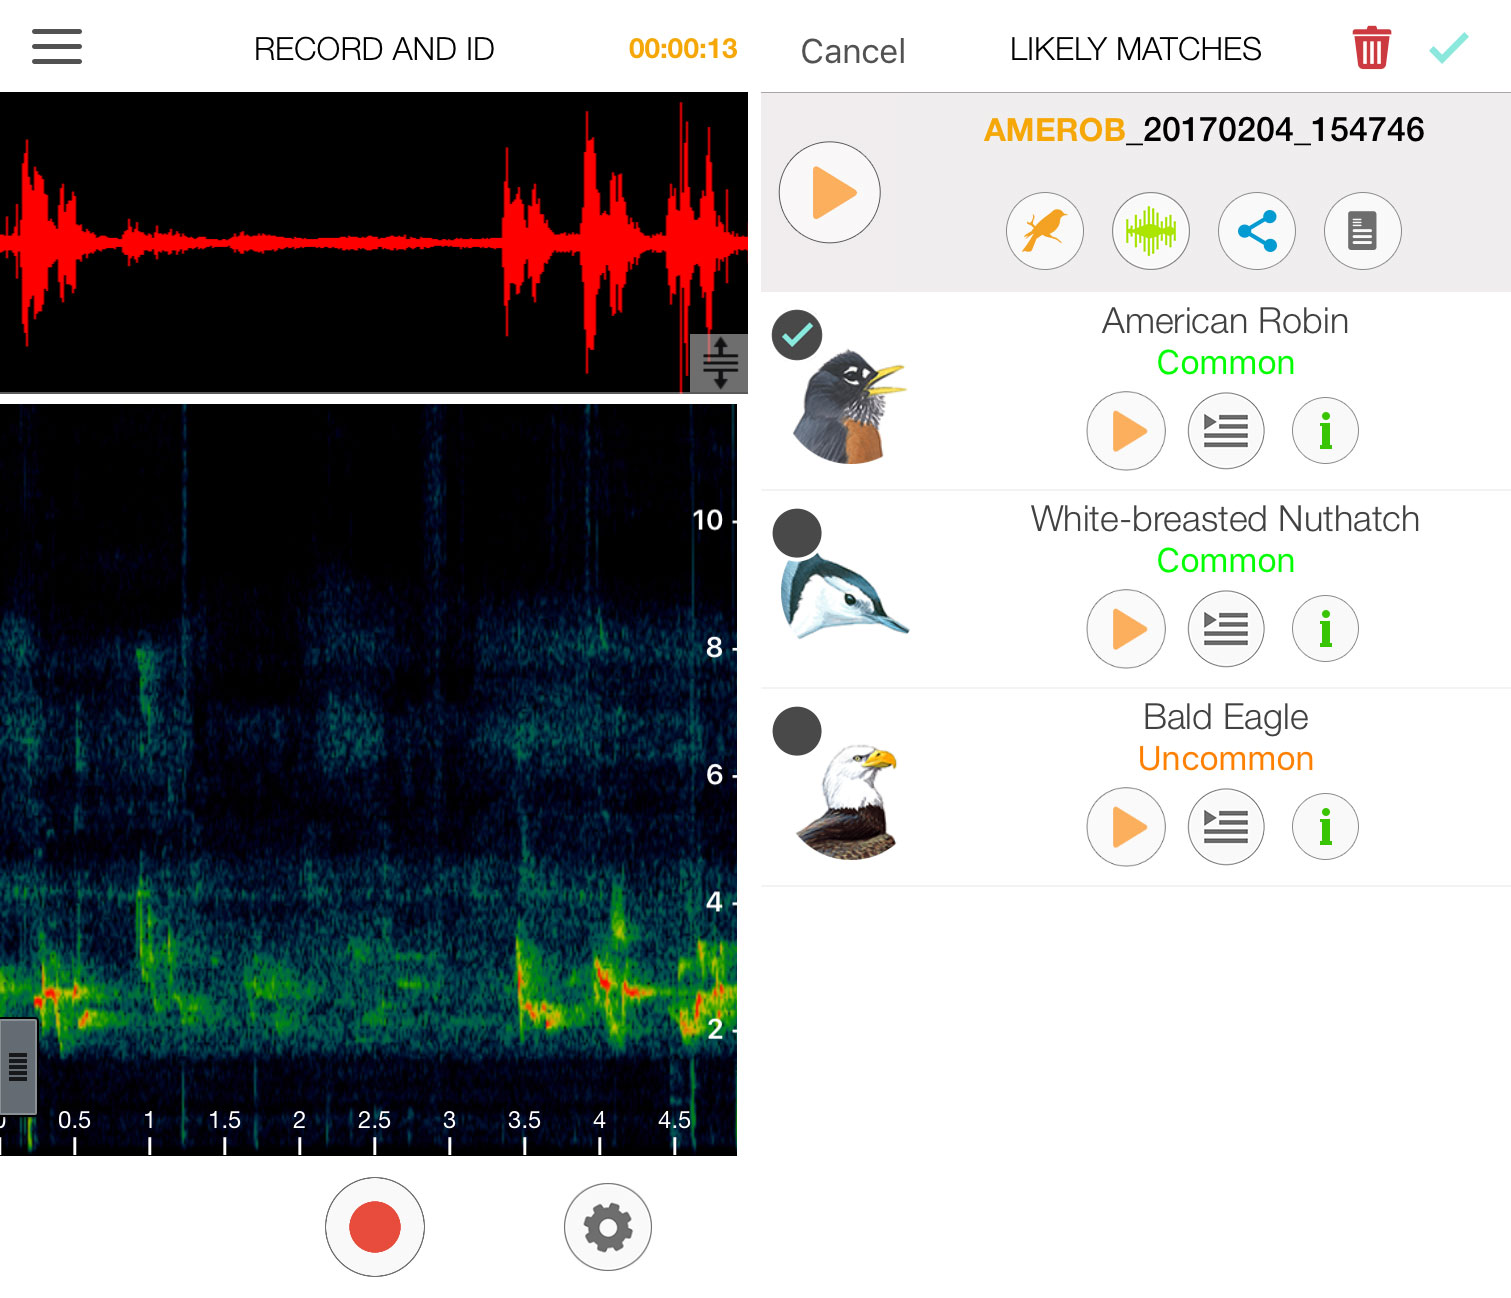 From left to right: Sonograms comparing the field recording with the app's pre-recorded clips; the top three options, ranked by probability. Courtesy of Jayme Moye